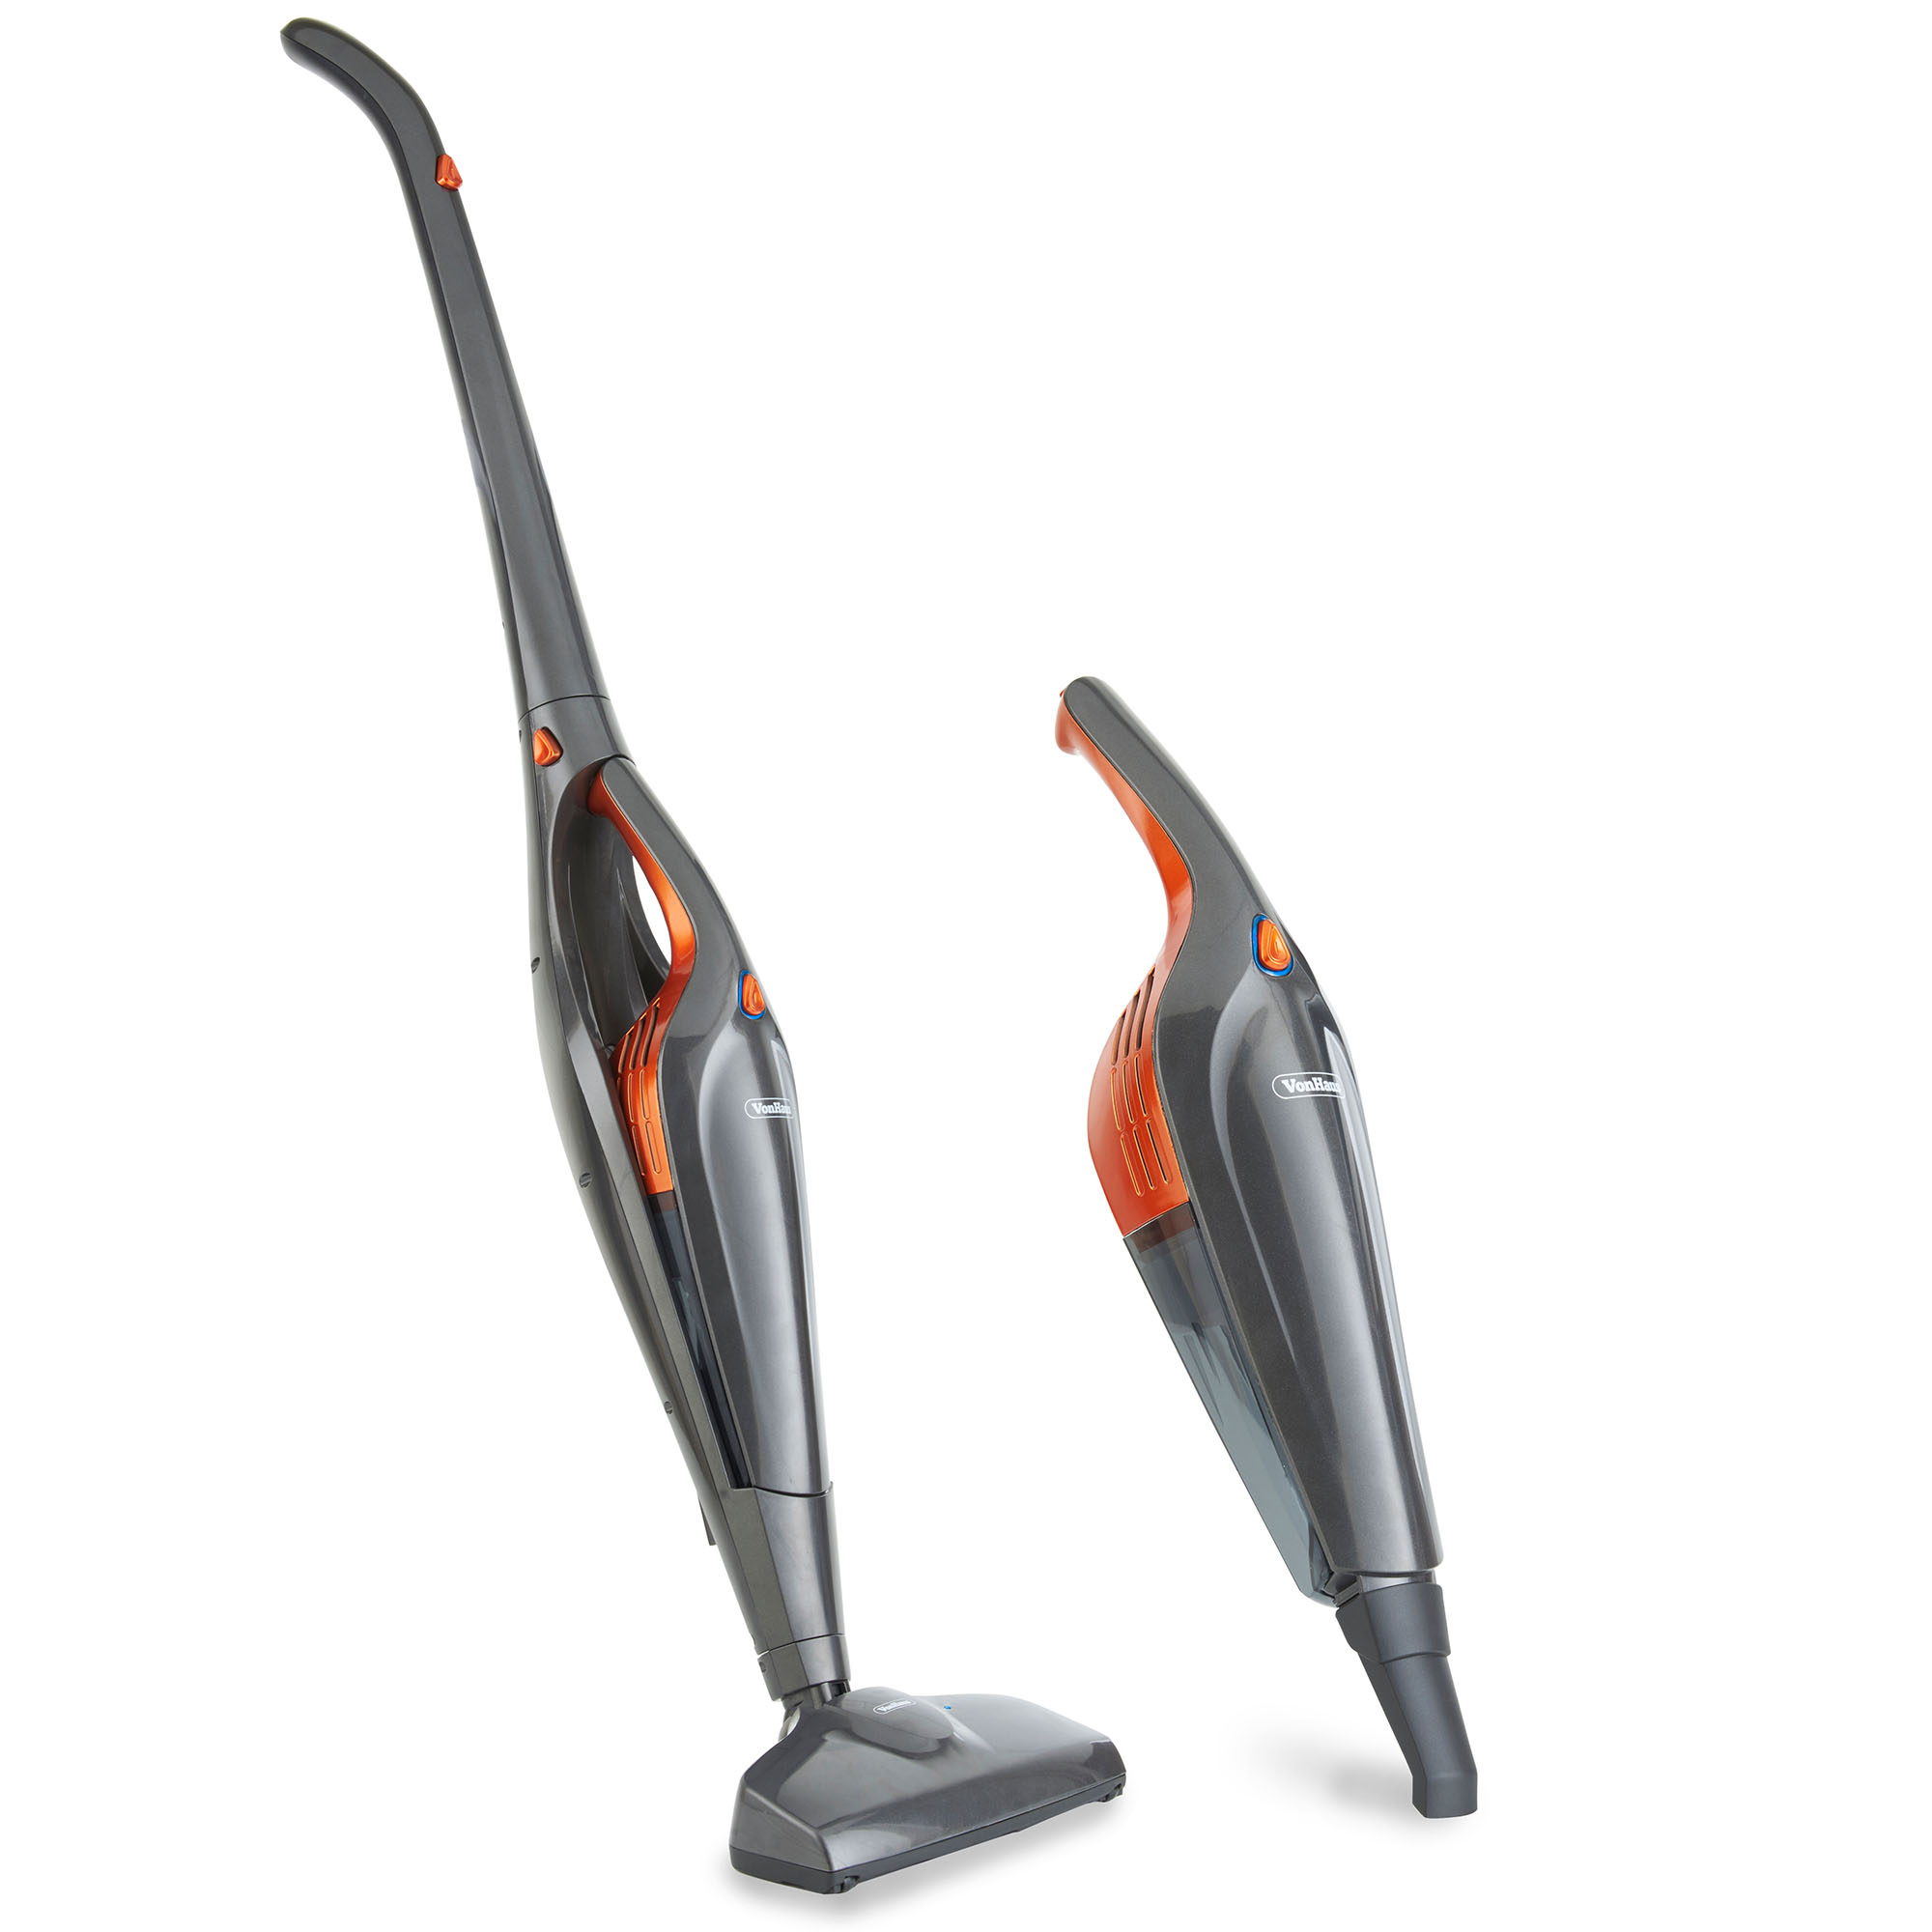 vonhaus 2 in 1 cordless vacuum cleaner 150w power 25 6v lithium ion battery 5056115700309 ebay. Black Bedroom Furniture Sets. Home Design Ideas